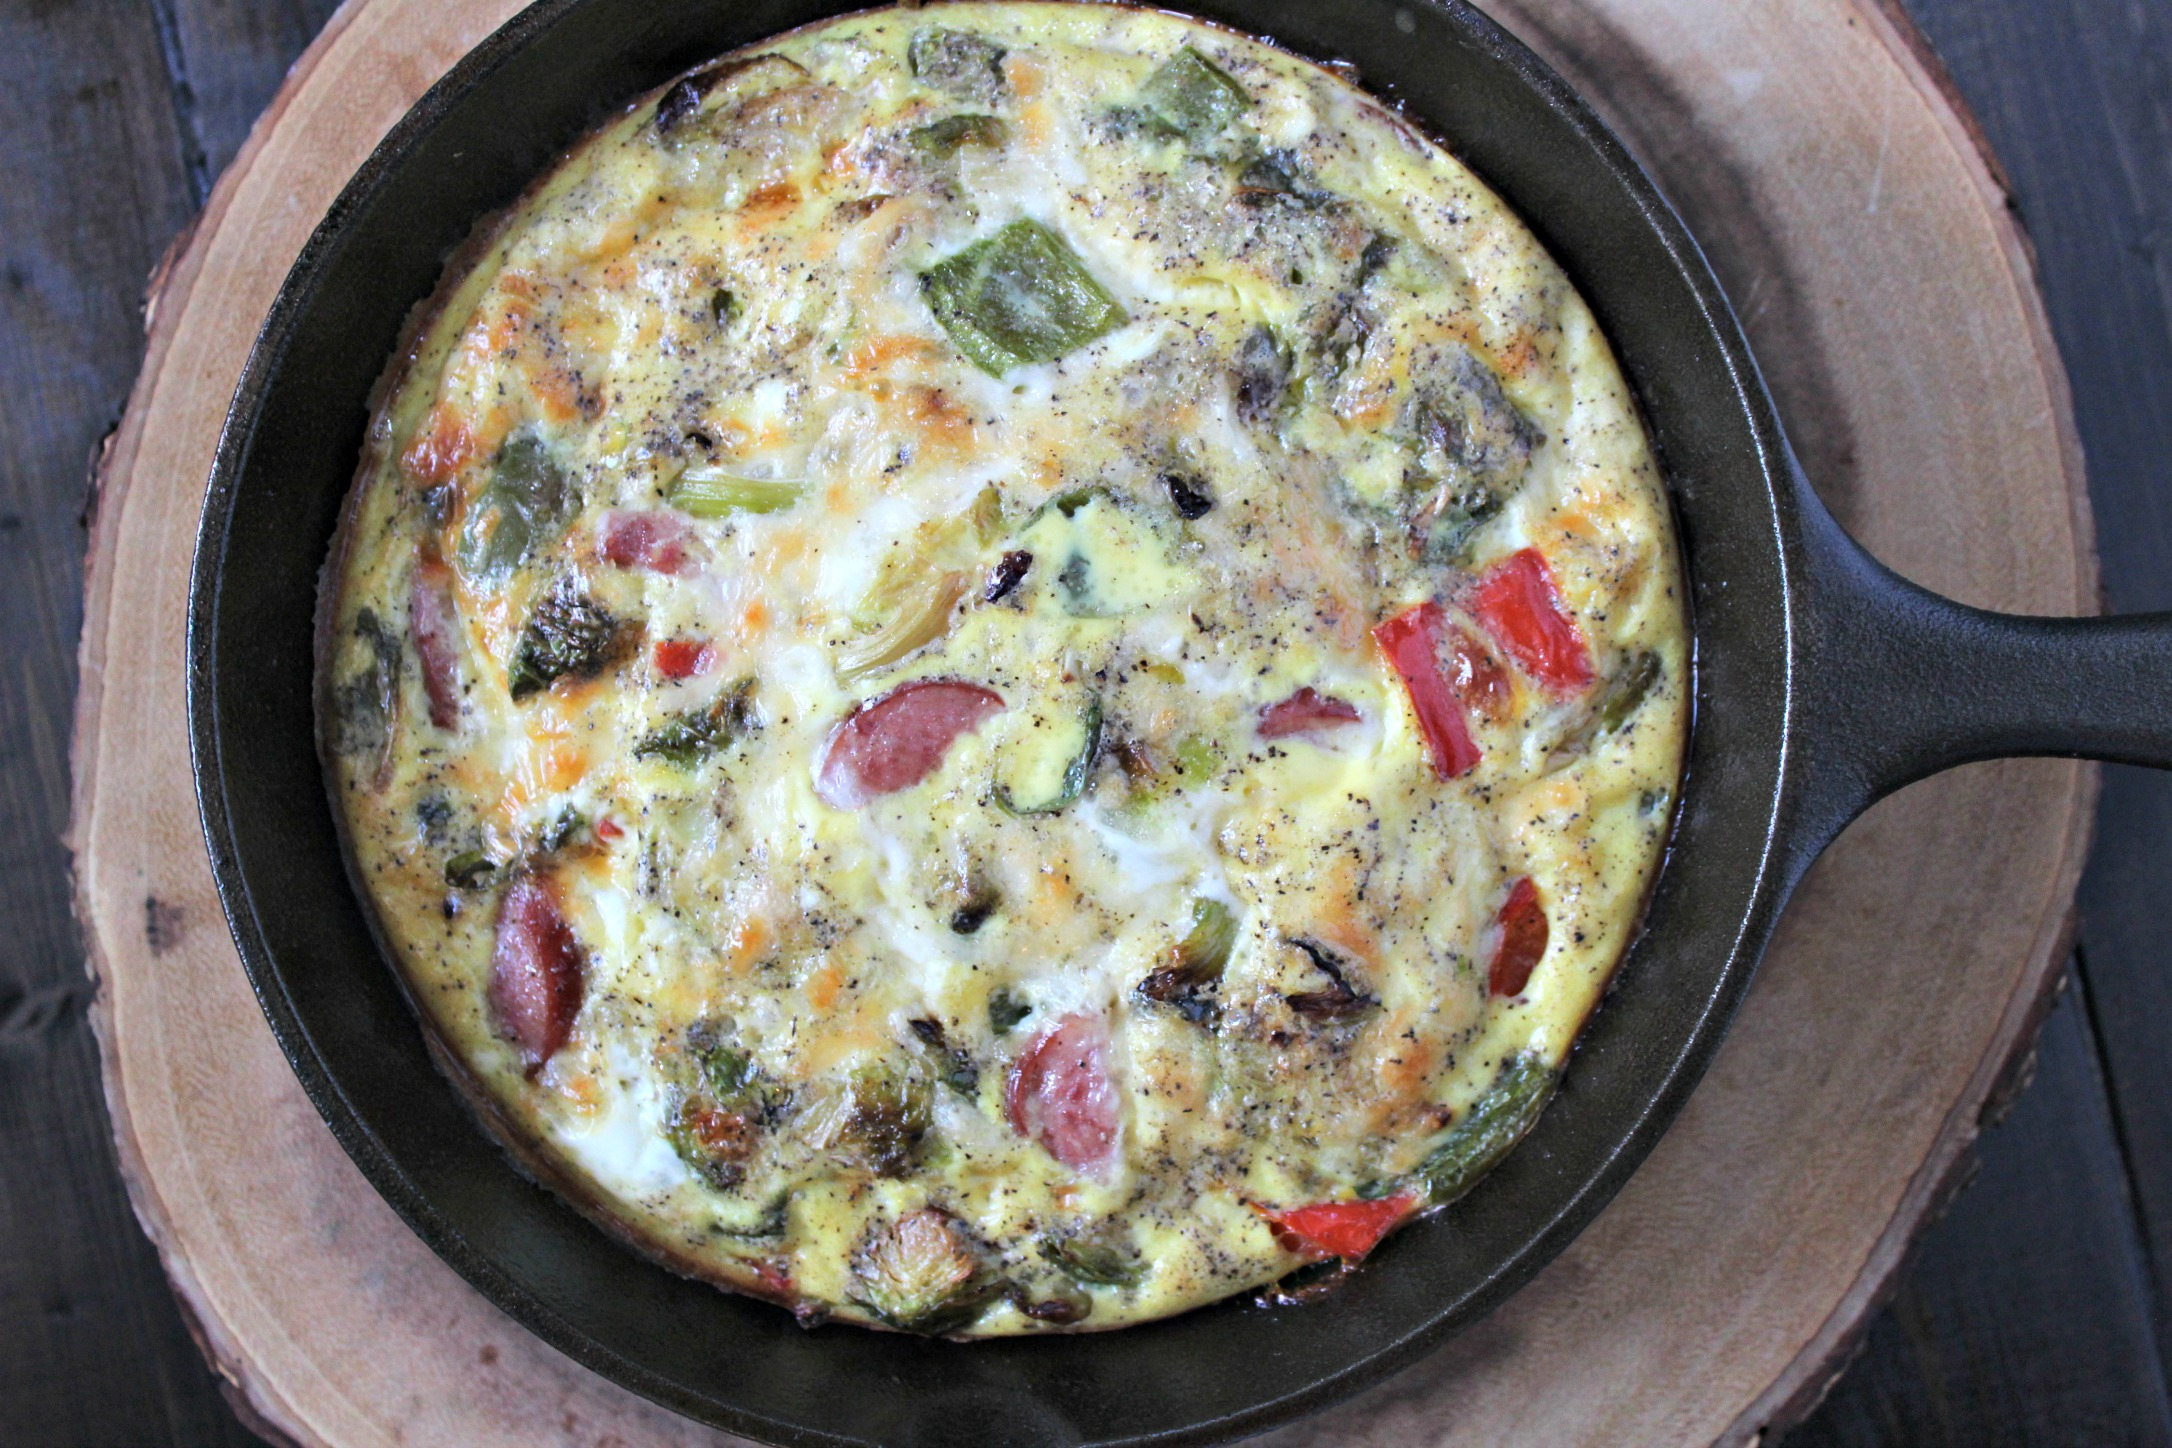 Brussel Sprouts & Turkey Sausage Frittata